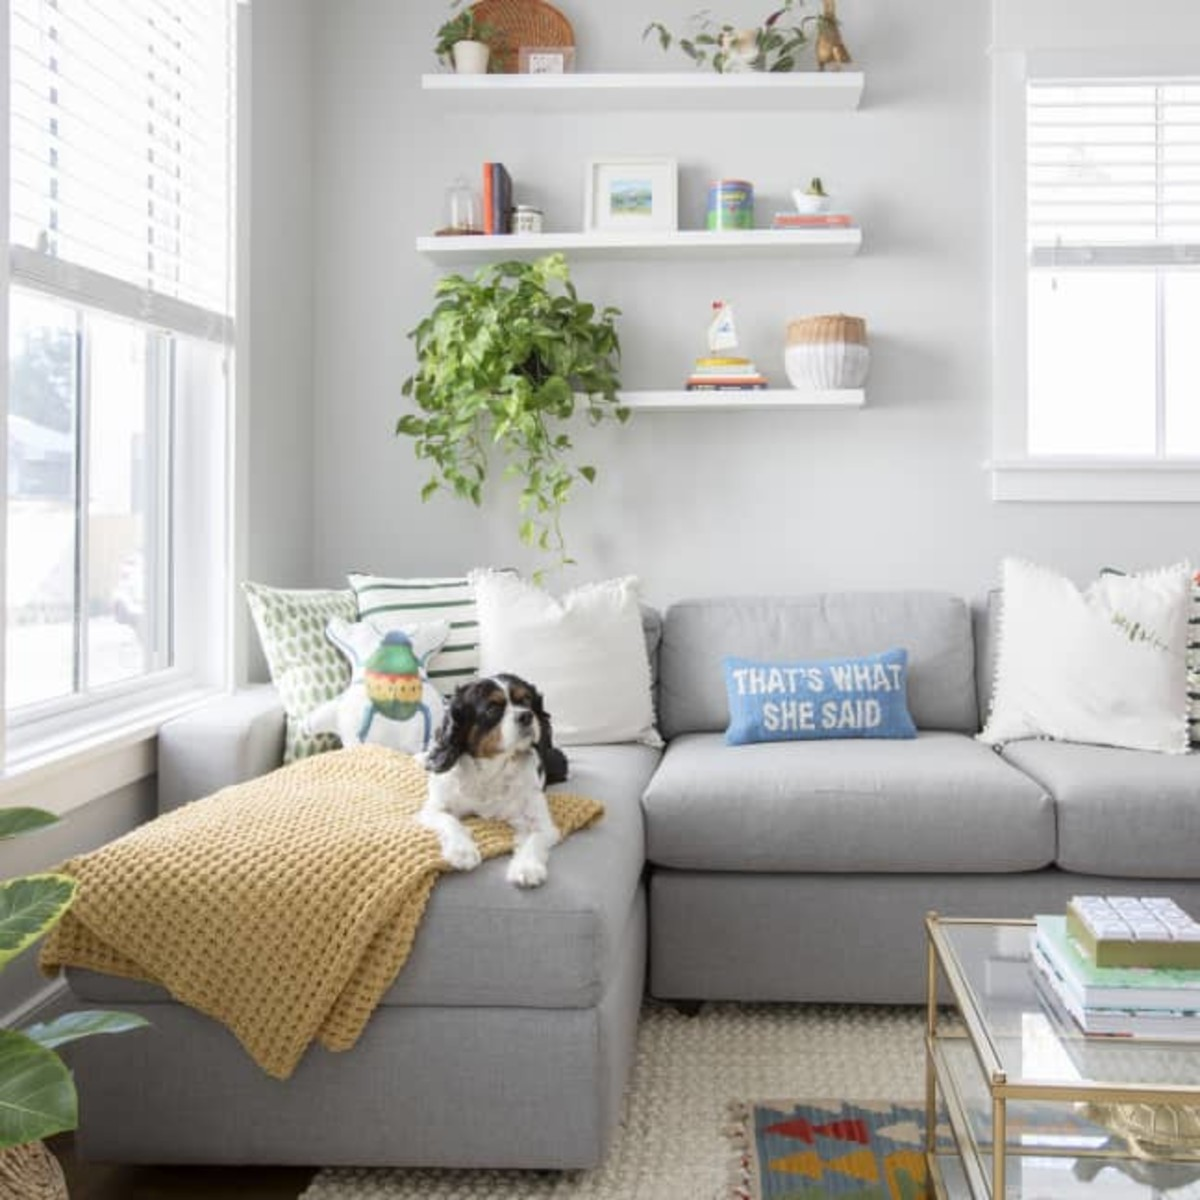 The pets and kids in the sofa cushions that are durable fabric.